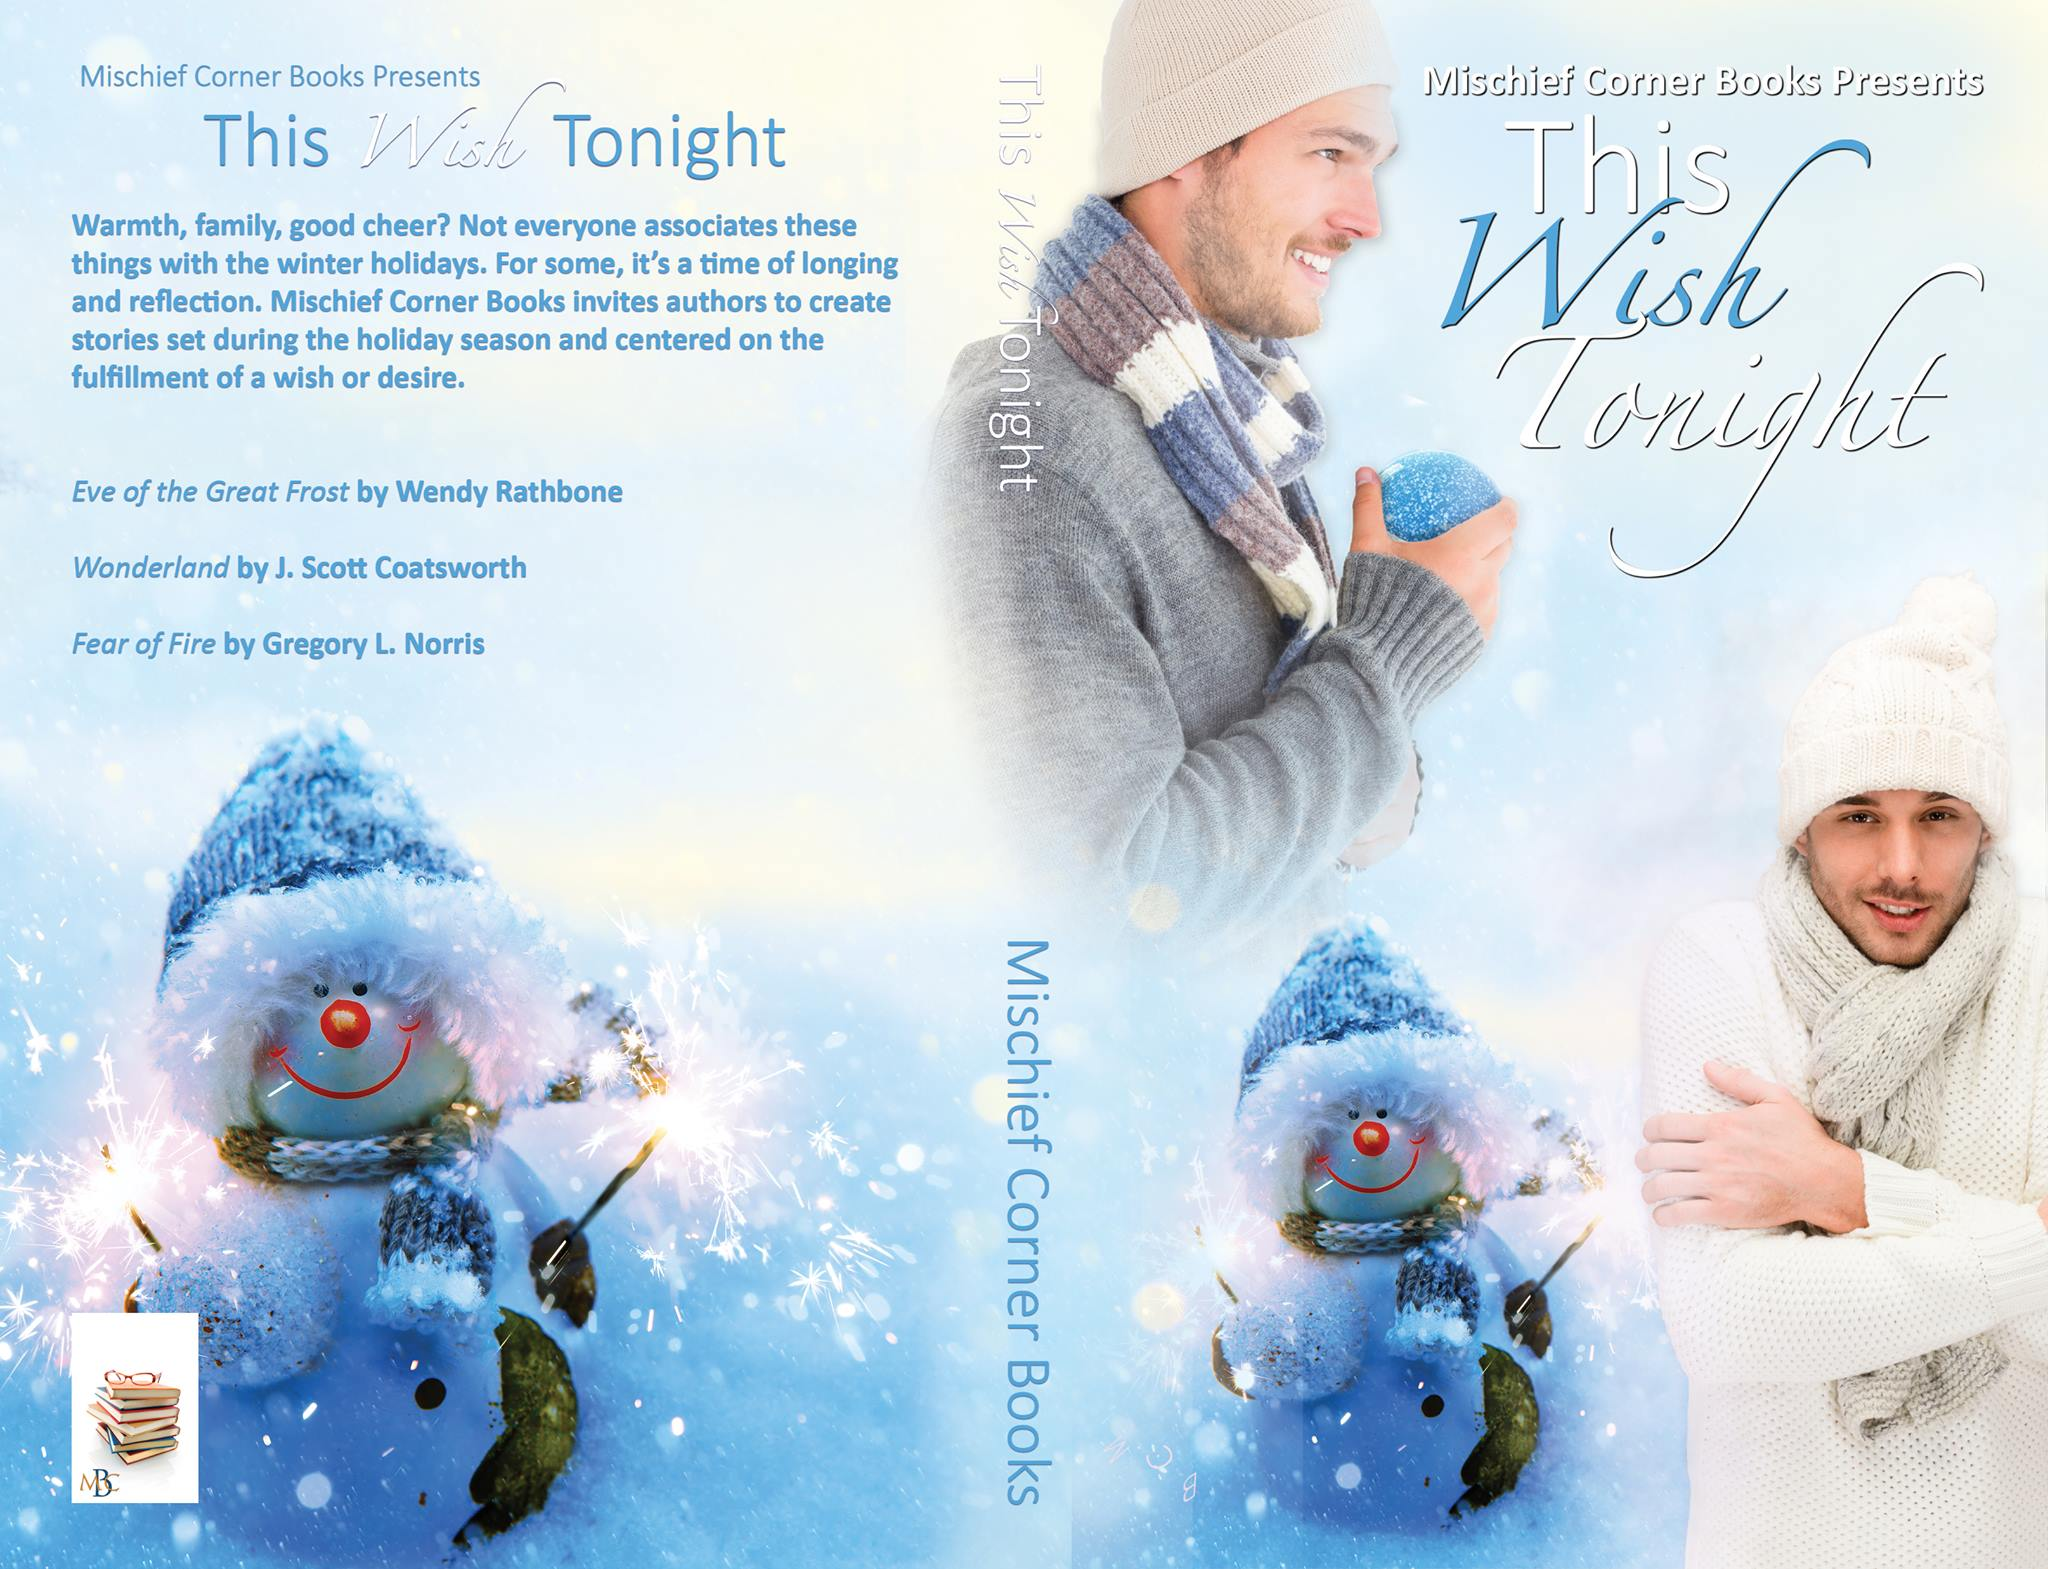 BLOG TOUR: This Wish Tonight by Gregory L. Norris, J. Scott Coatsworth & Wendy Rathbone